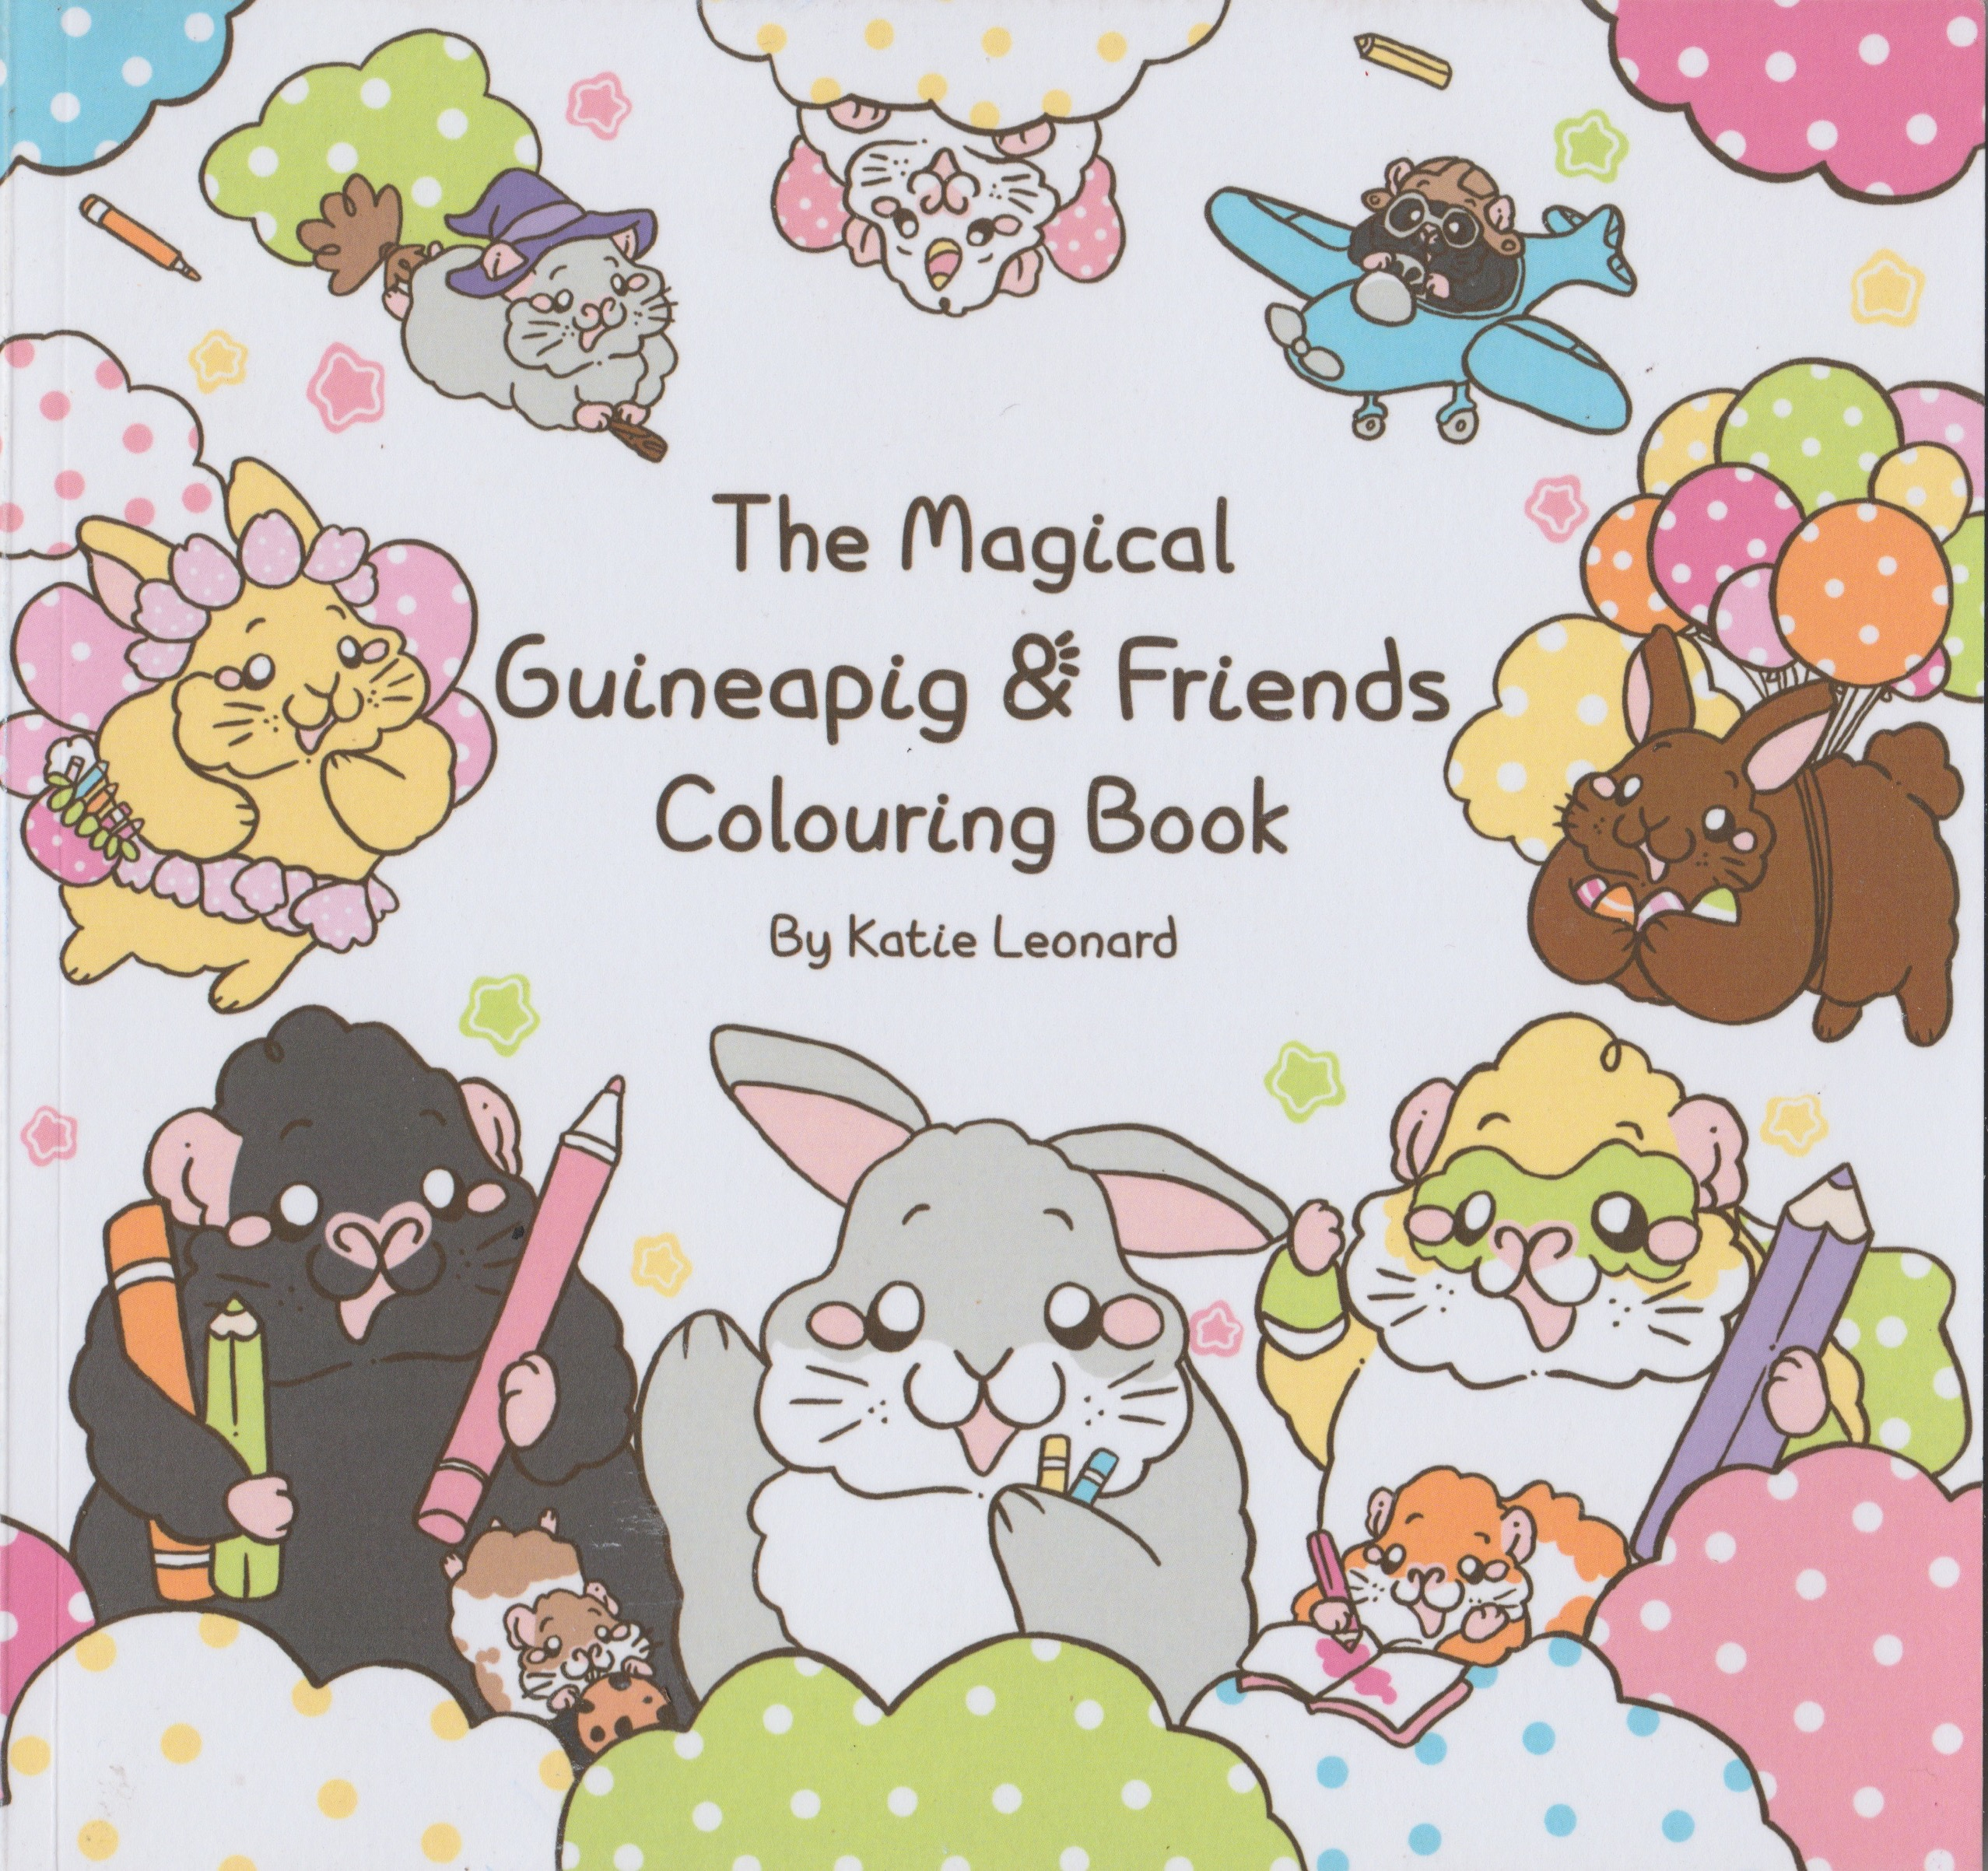 The Magical Guinea Pig & Friends Colouring Book